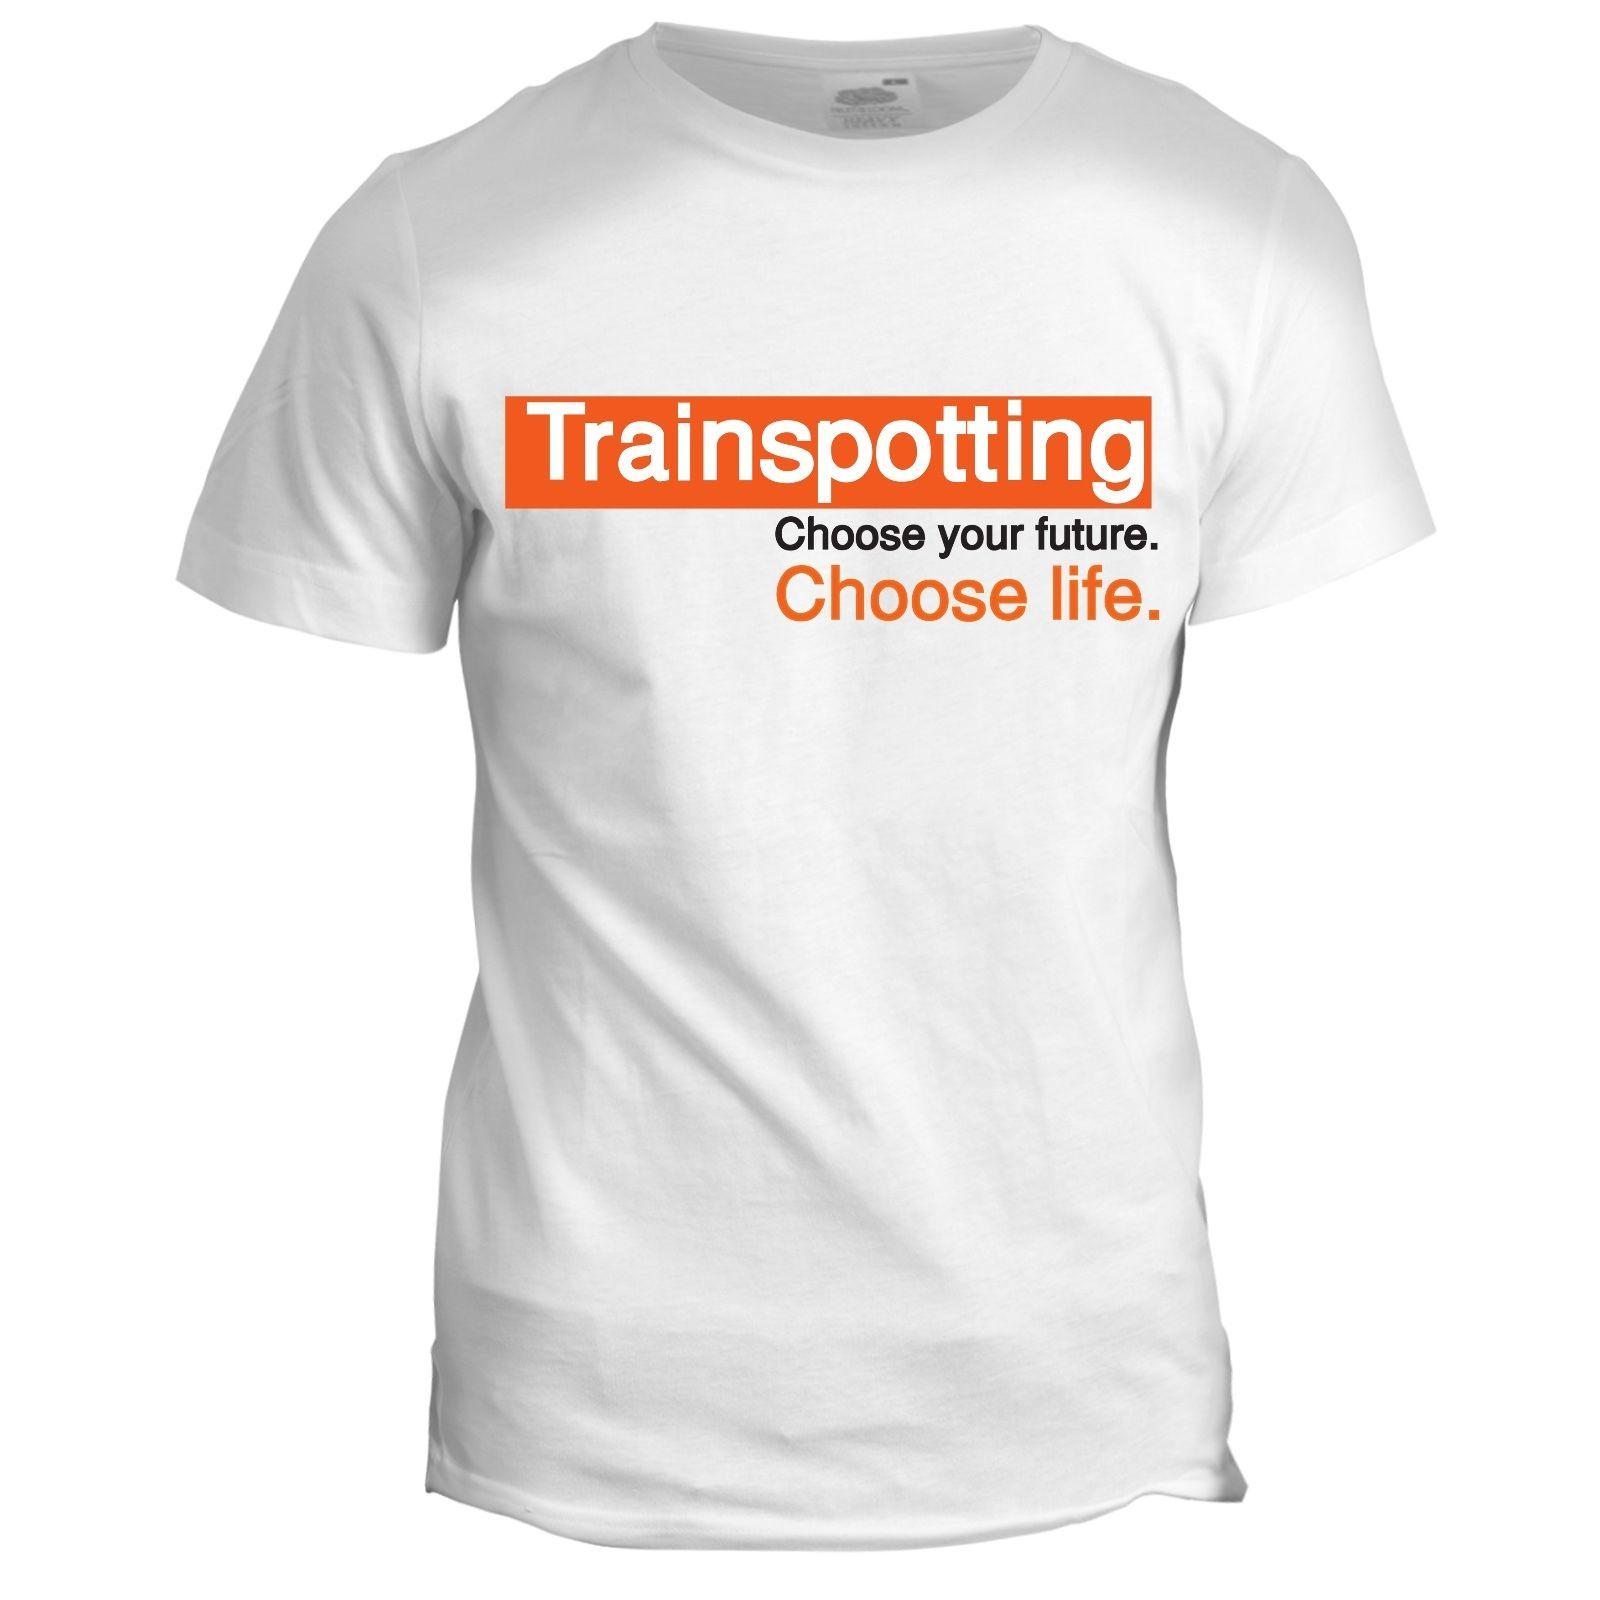 Trainspotting Inspired Film Movie Mens Tumblr 90s Choose Life T Shirt Funny Casual Tee Designer White Tee Shirts Cool T Shirts Buy Online From Fatcuckoo 12 96 Dhgate Com